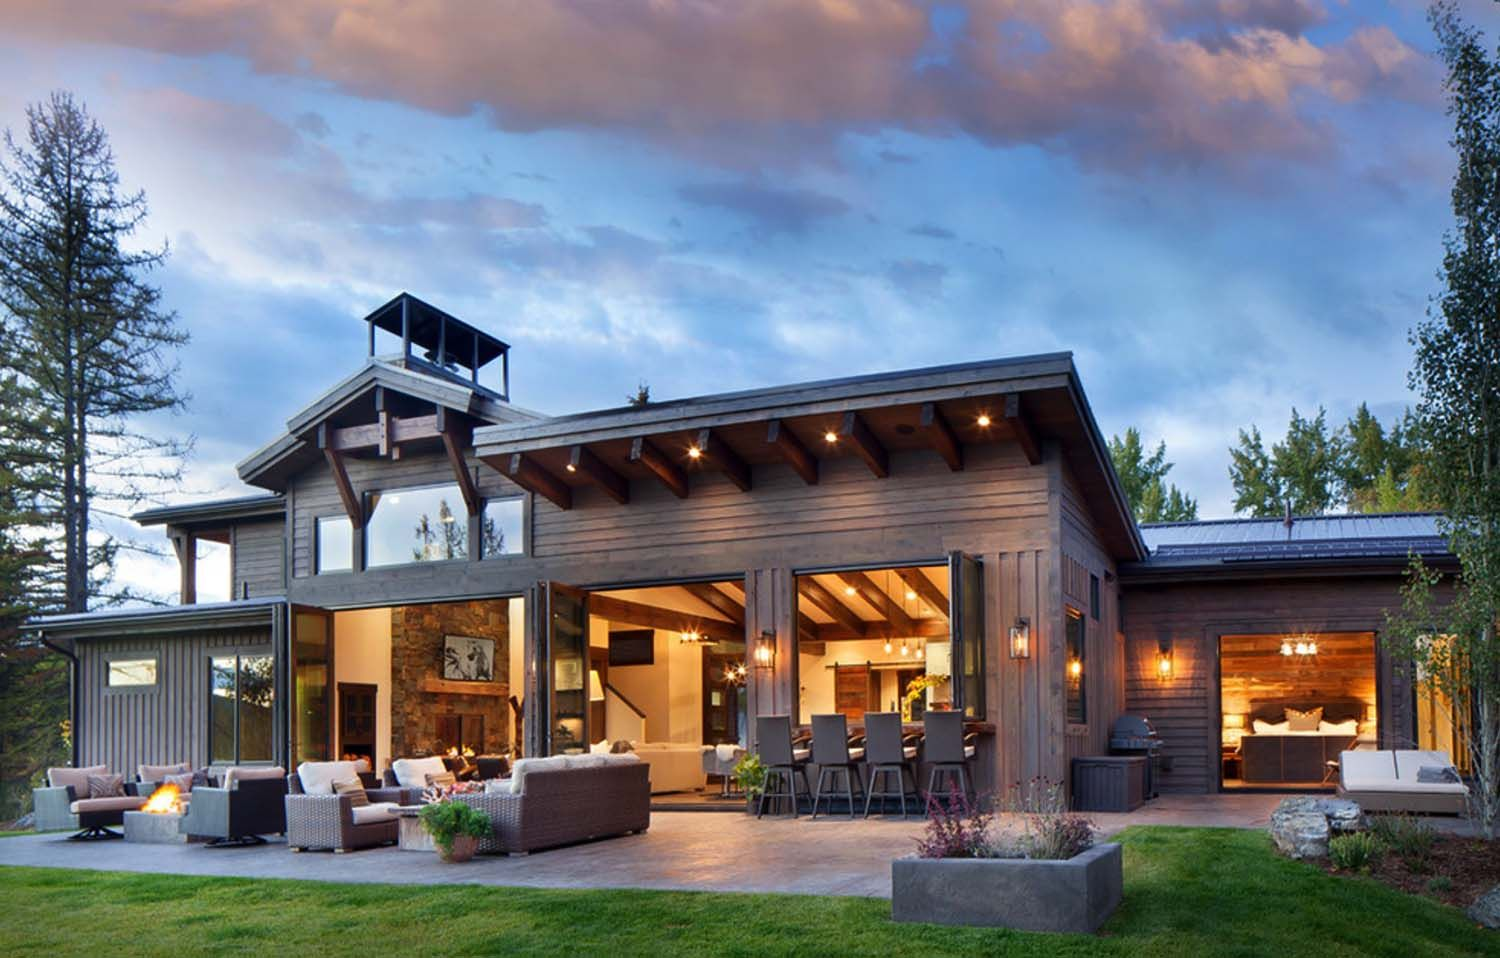 Rustic Modern Dwelling Nestled In The Northern Rocky Mountains Modern House Design Modern Rustic Homes Mansion Interior